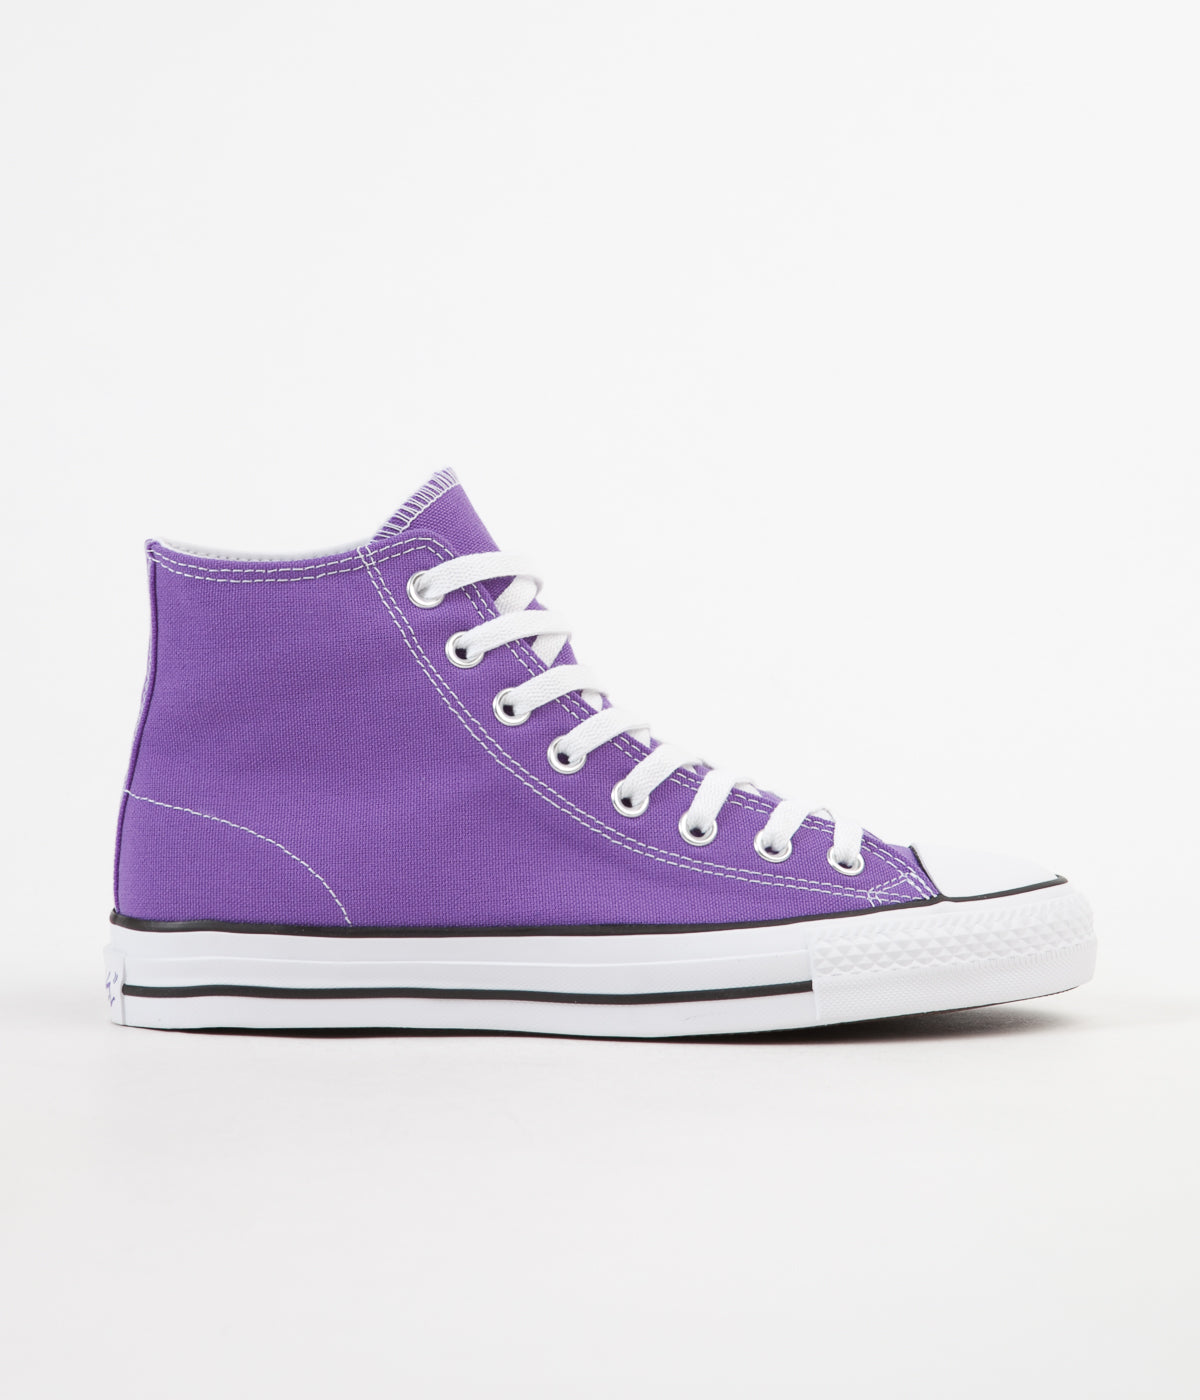 Chaussure Converse CTAS Pro Hi Electric Purple Black White